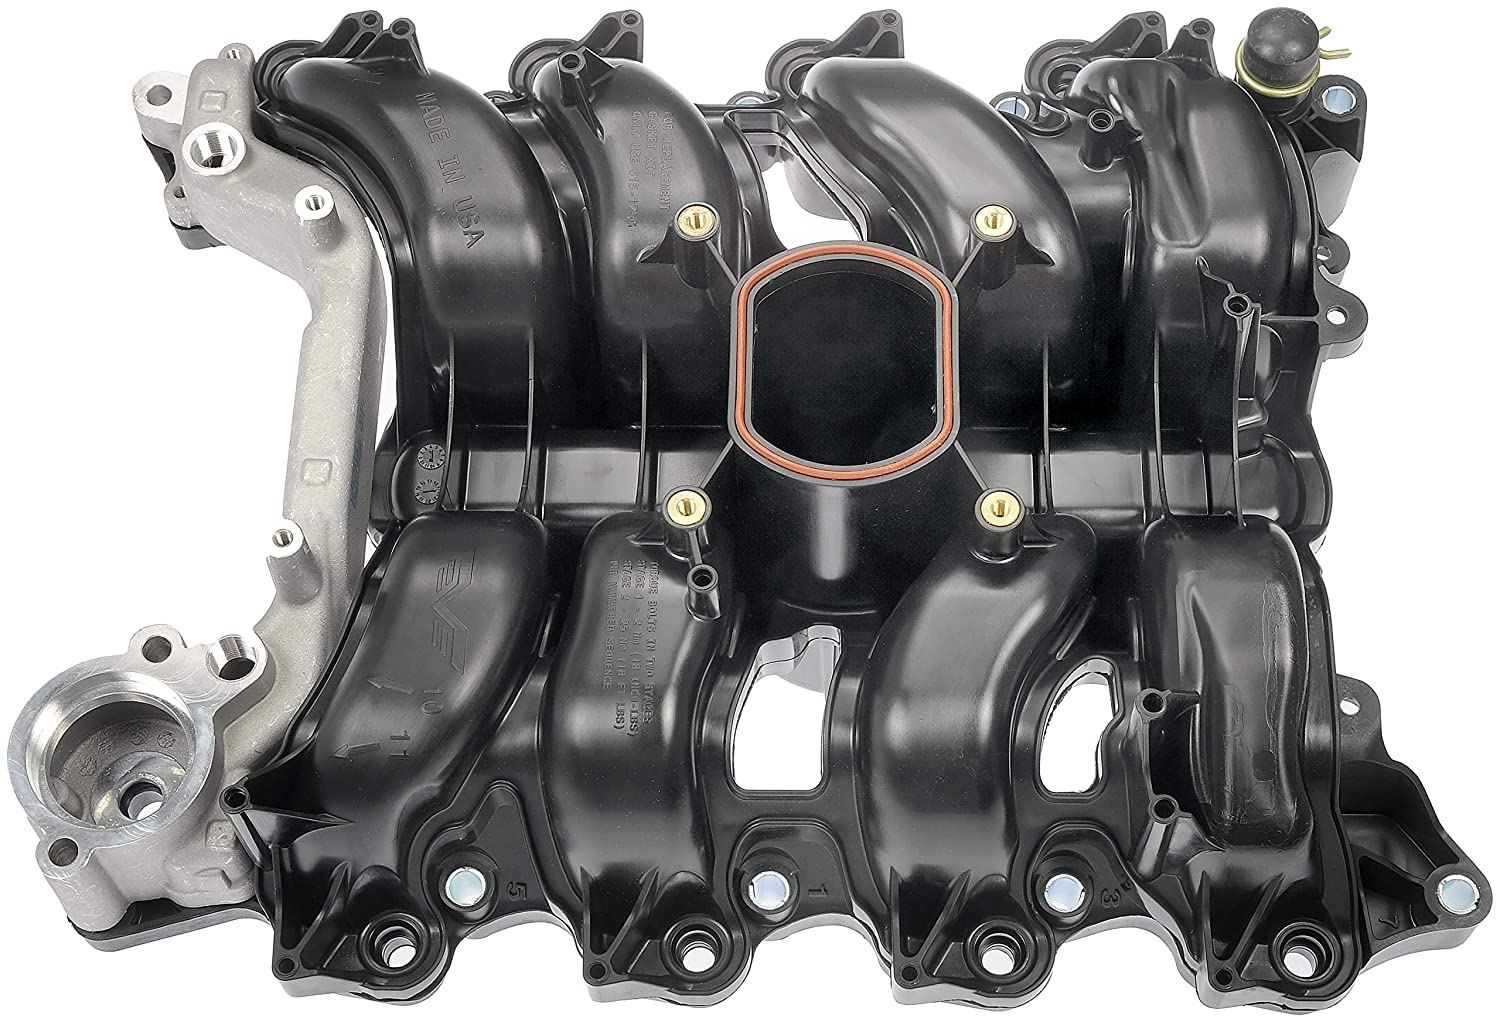 Dorman 615-175 Upper Plastic Intake Manifold - Includes Gaskets for Select Ford/Lincoln/Mercury Models (MADE IN USA)